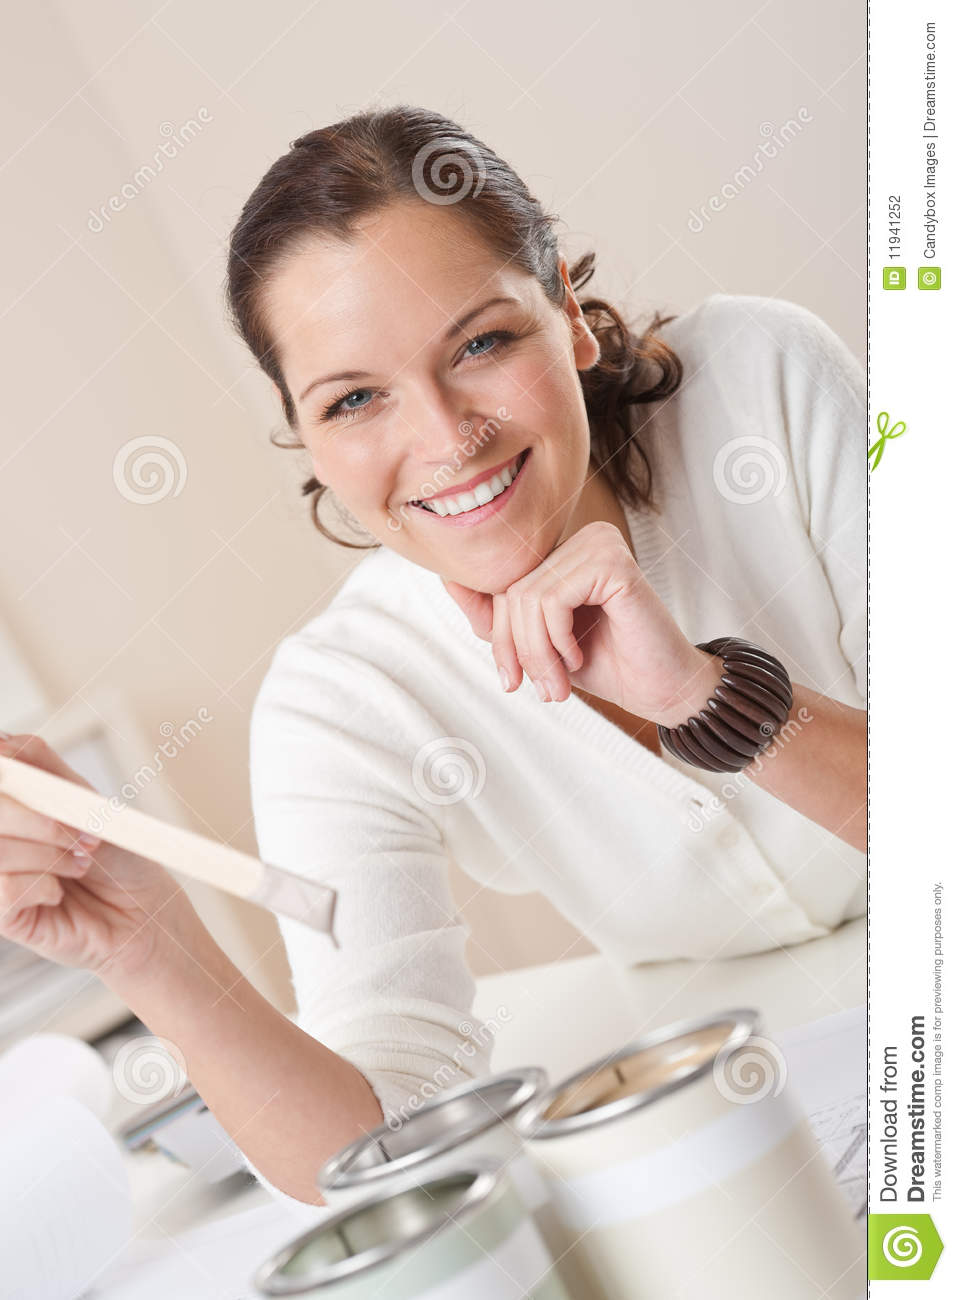 Female Interior Designer With Cans Of Paint Stock Photo